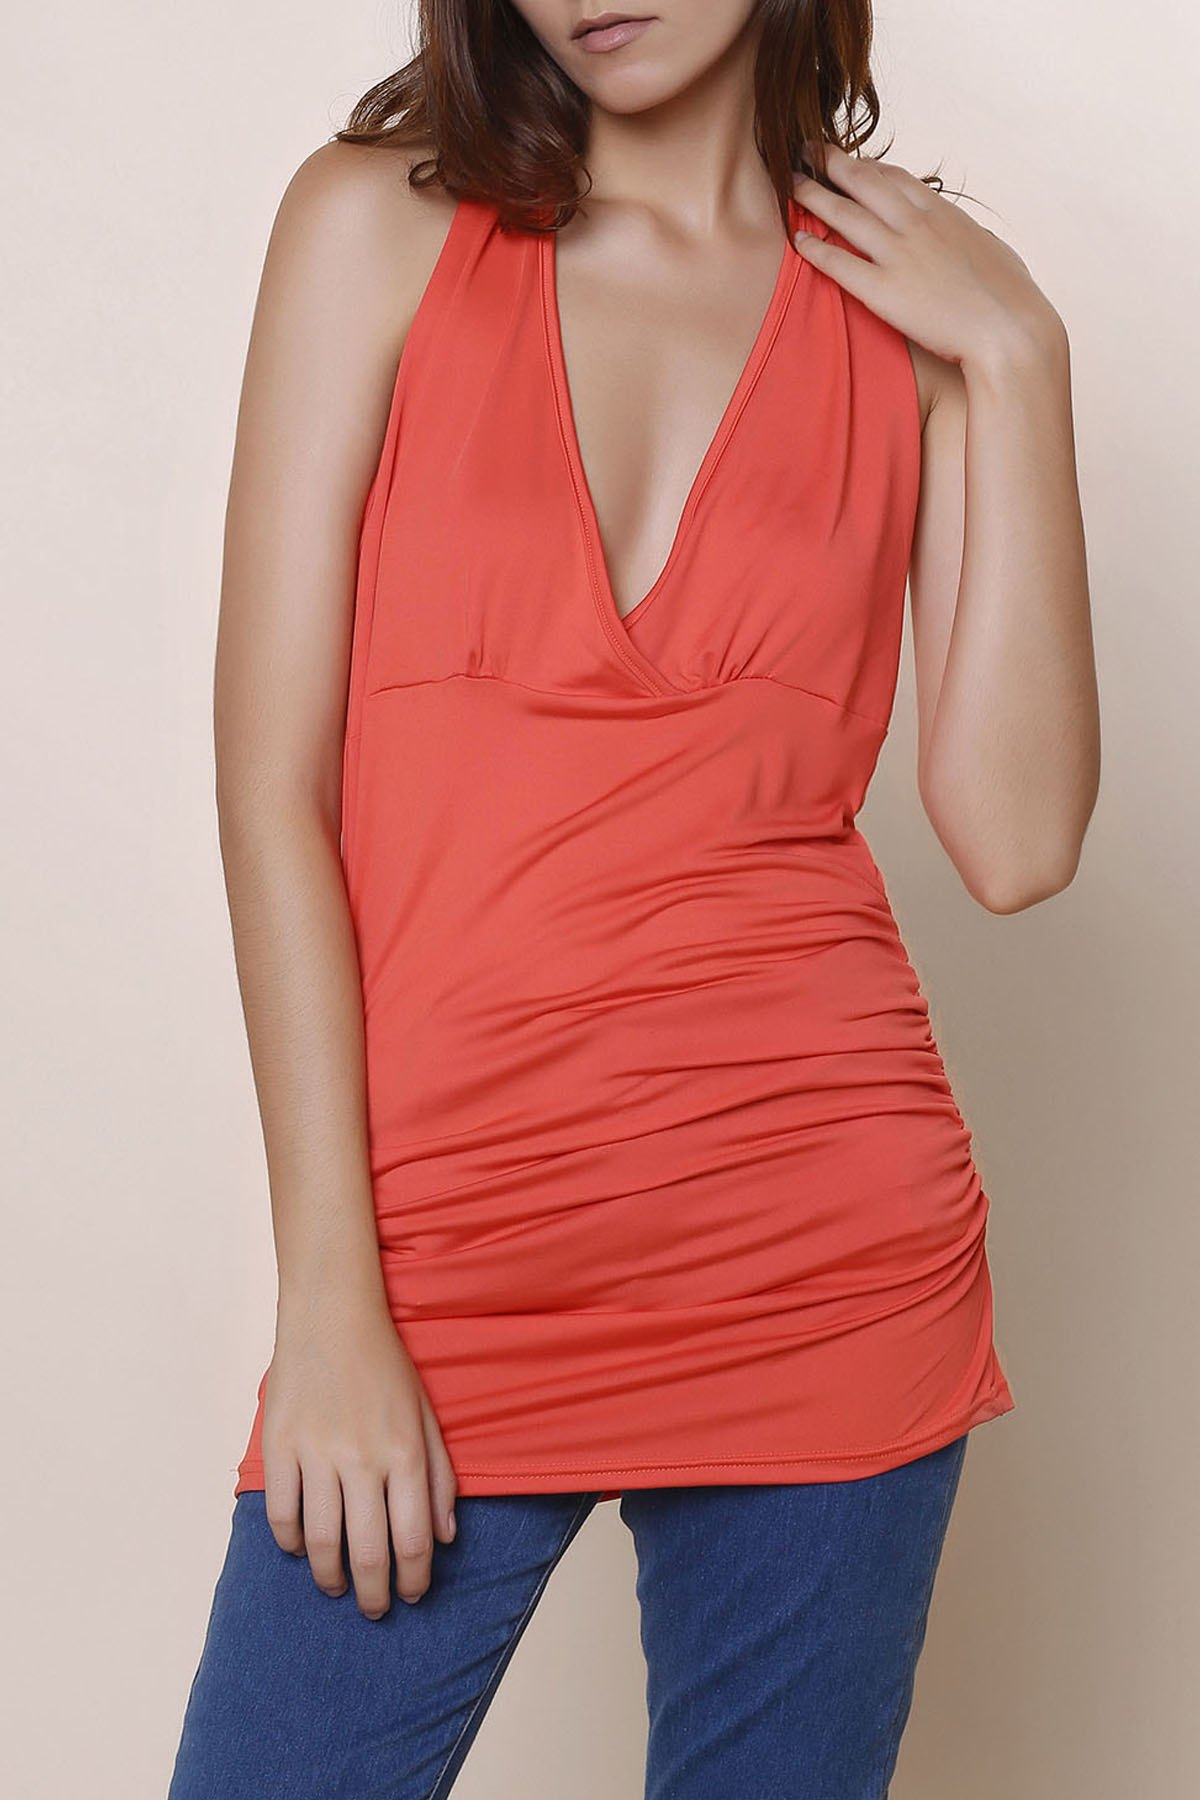 Stylish Halter Sleeveless Solid Color Backless Ruched Women's Tank Top - RED S